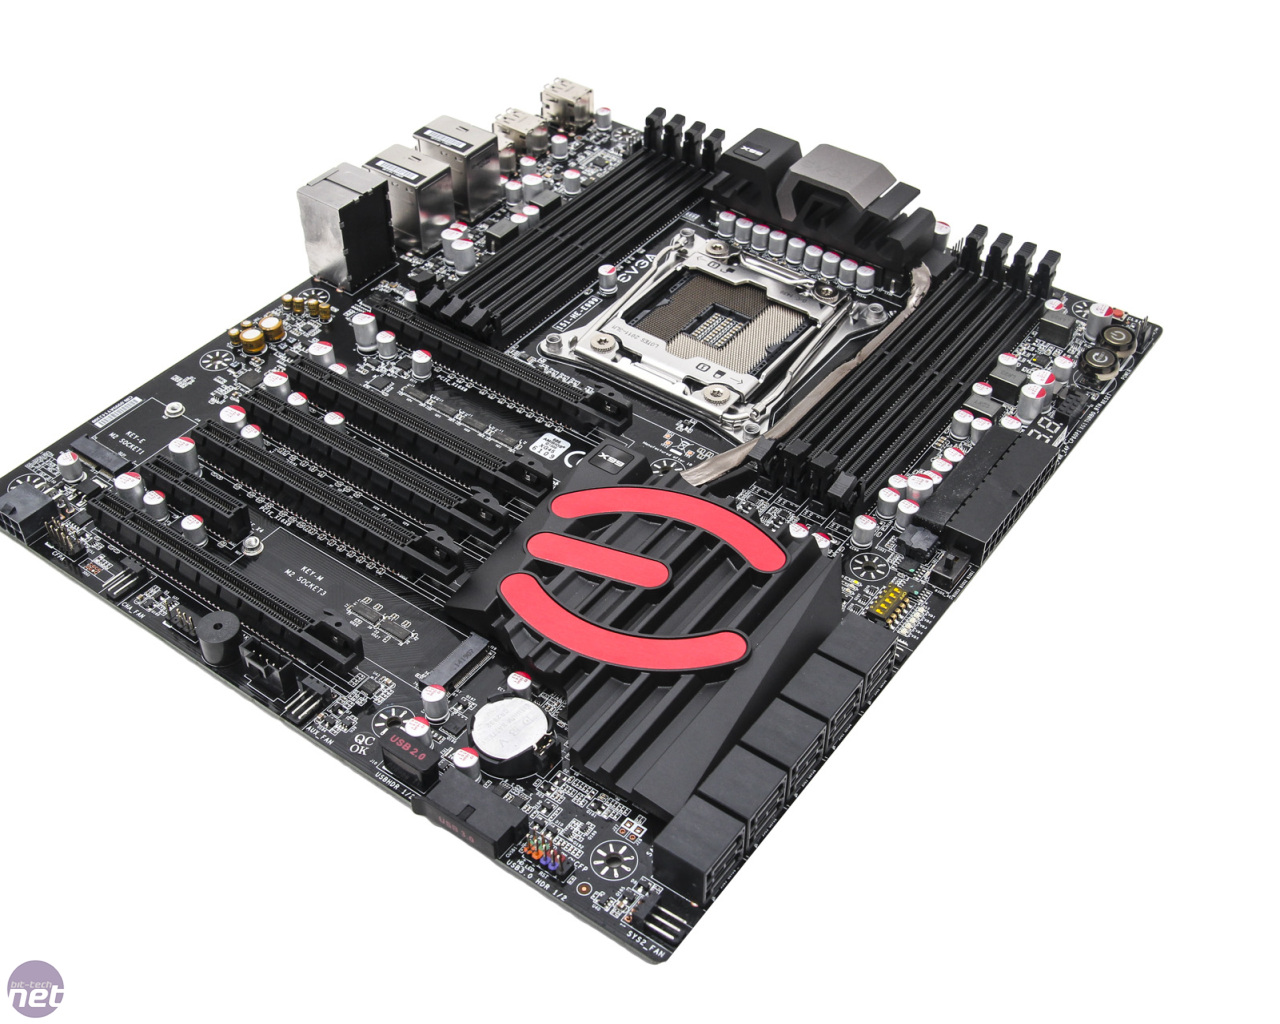 evga-x99-classified-4-1280x1024.jpg